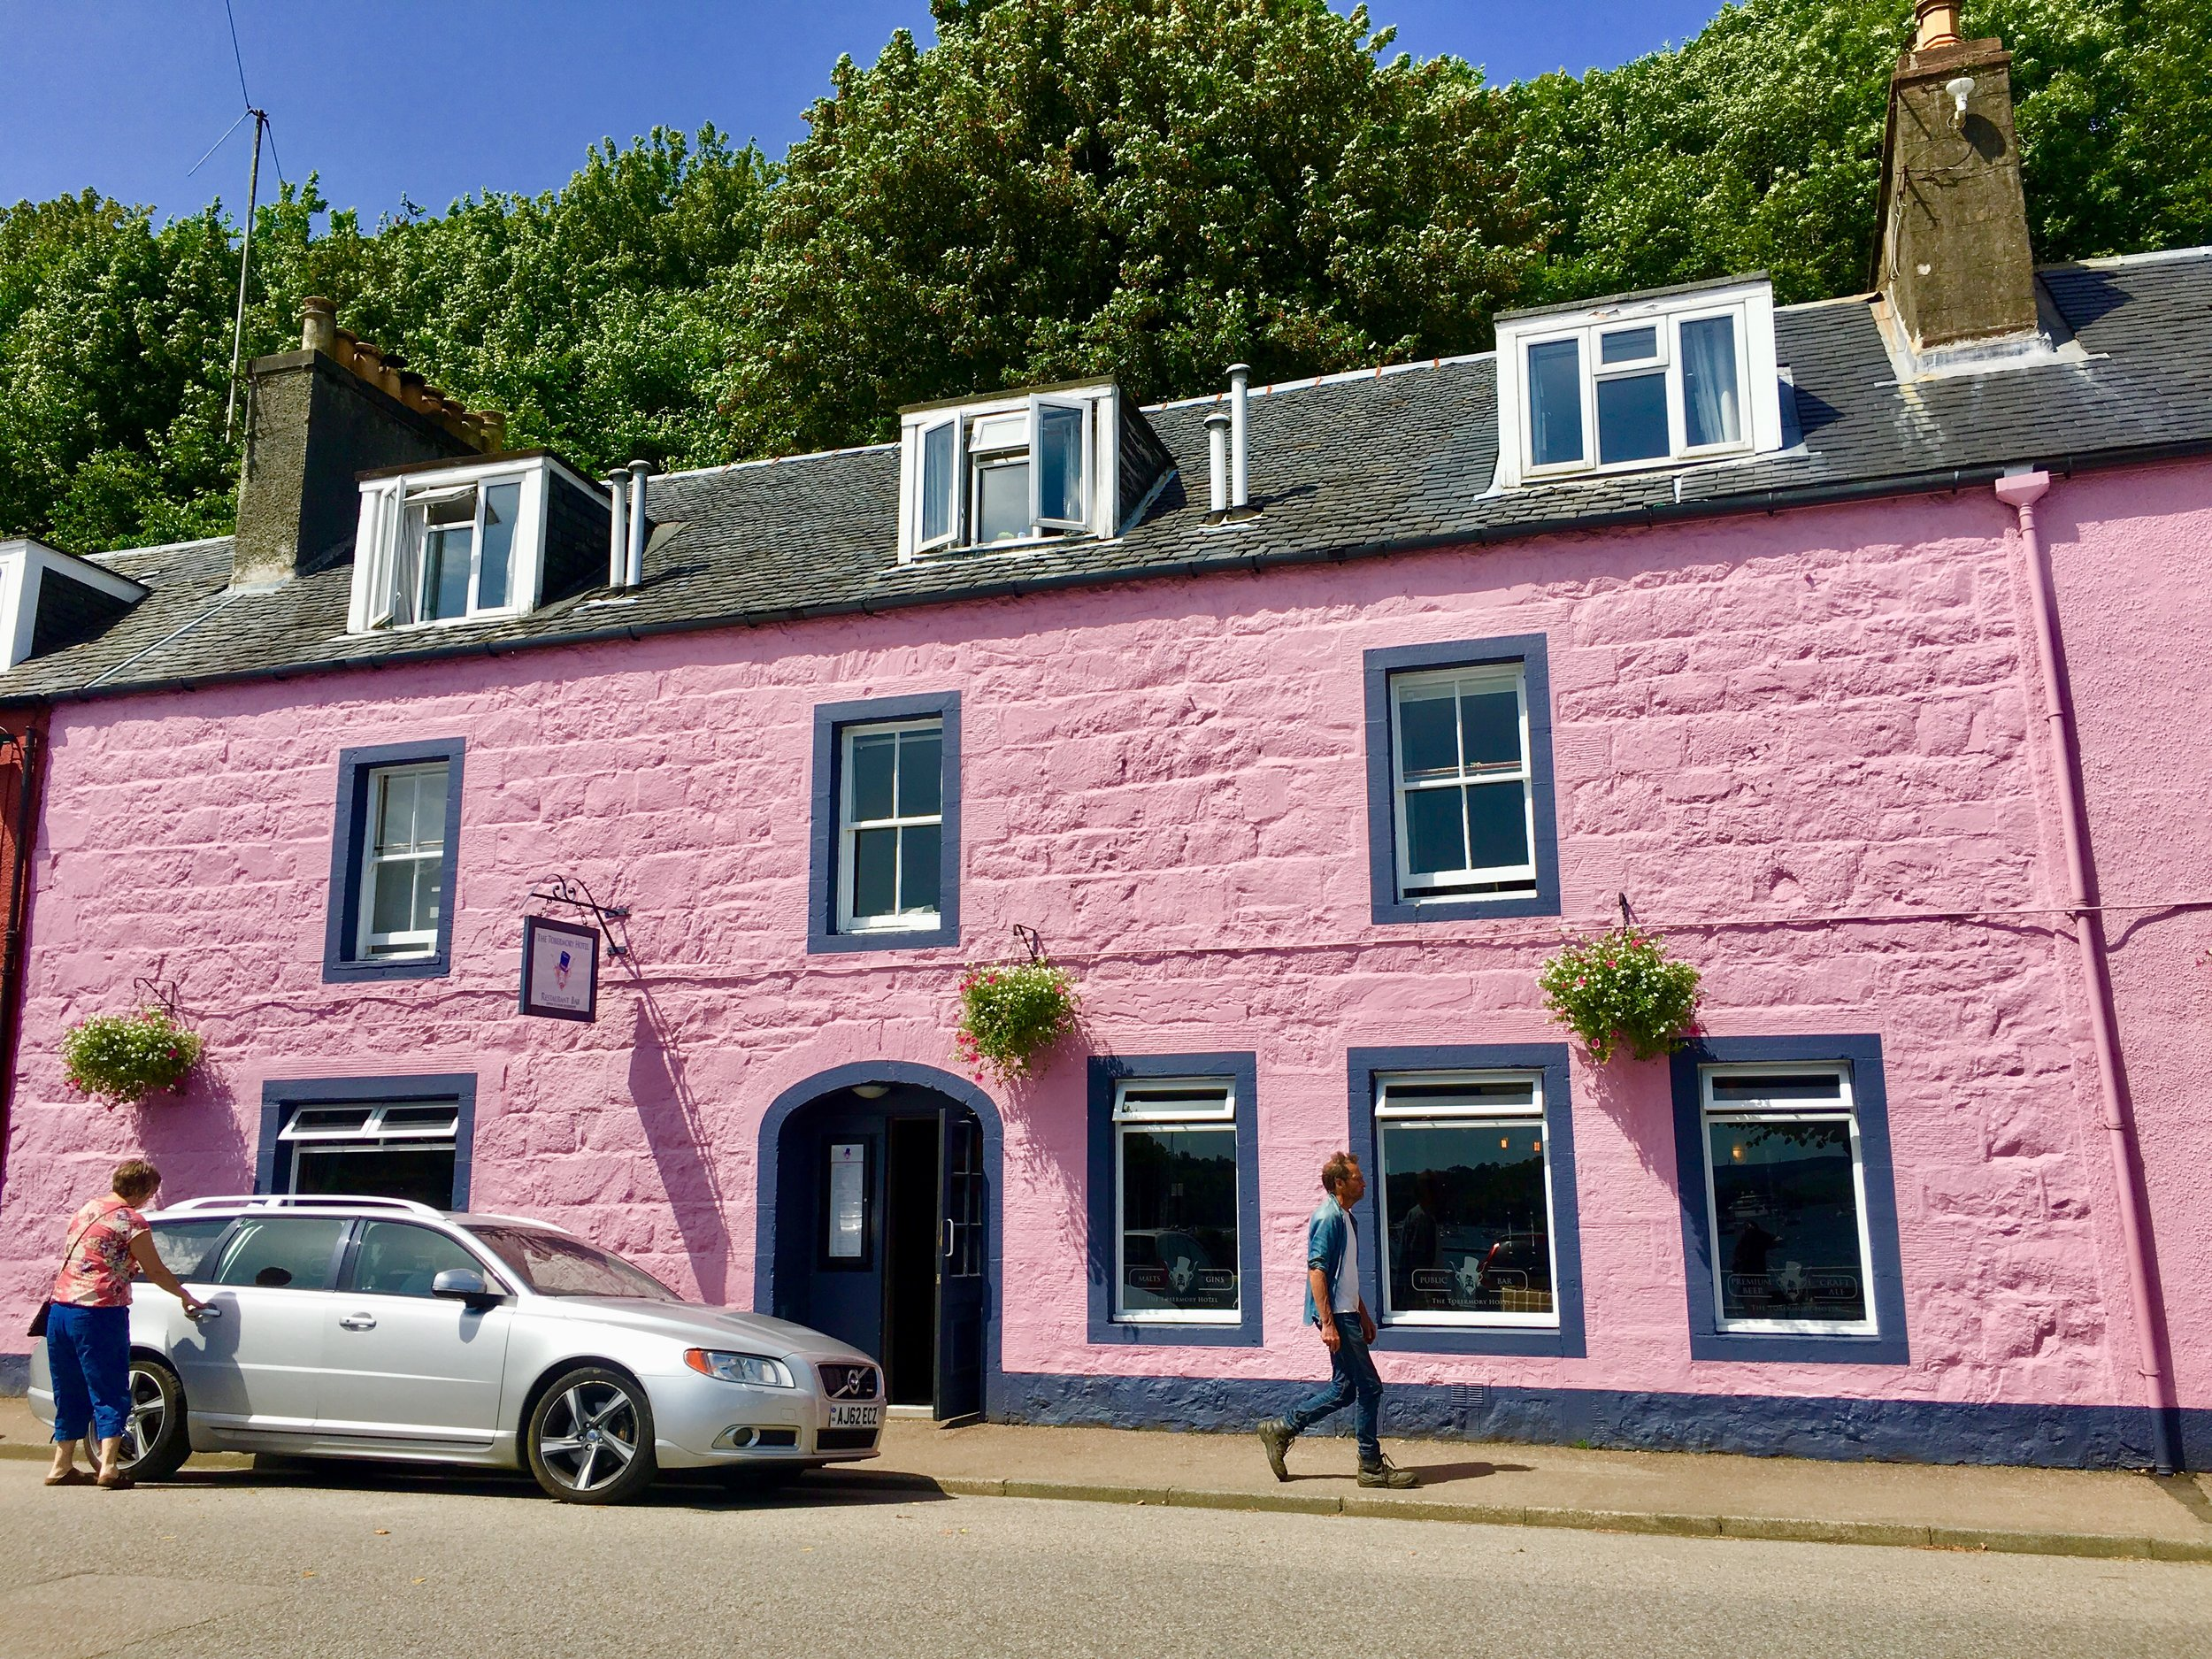 Can't miss The Tobermory Hotel in all its pink glory!